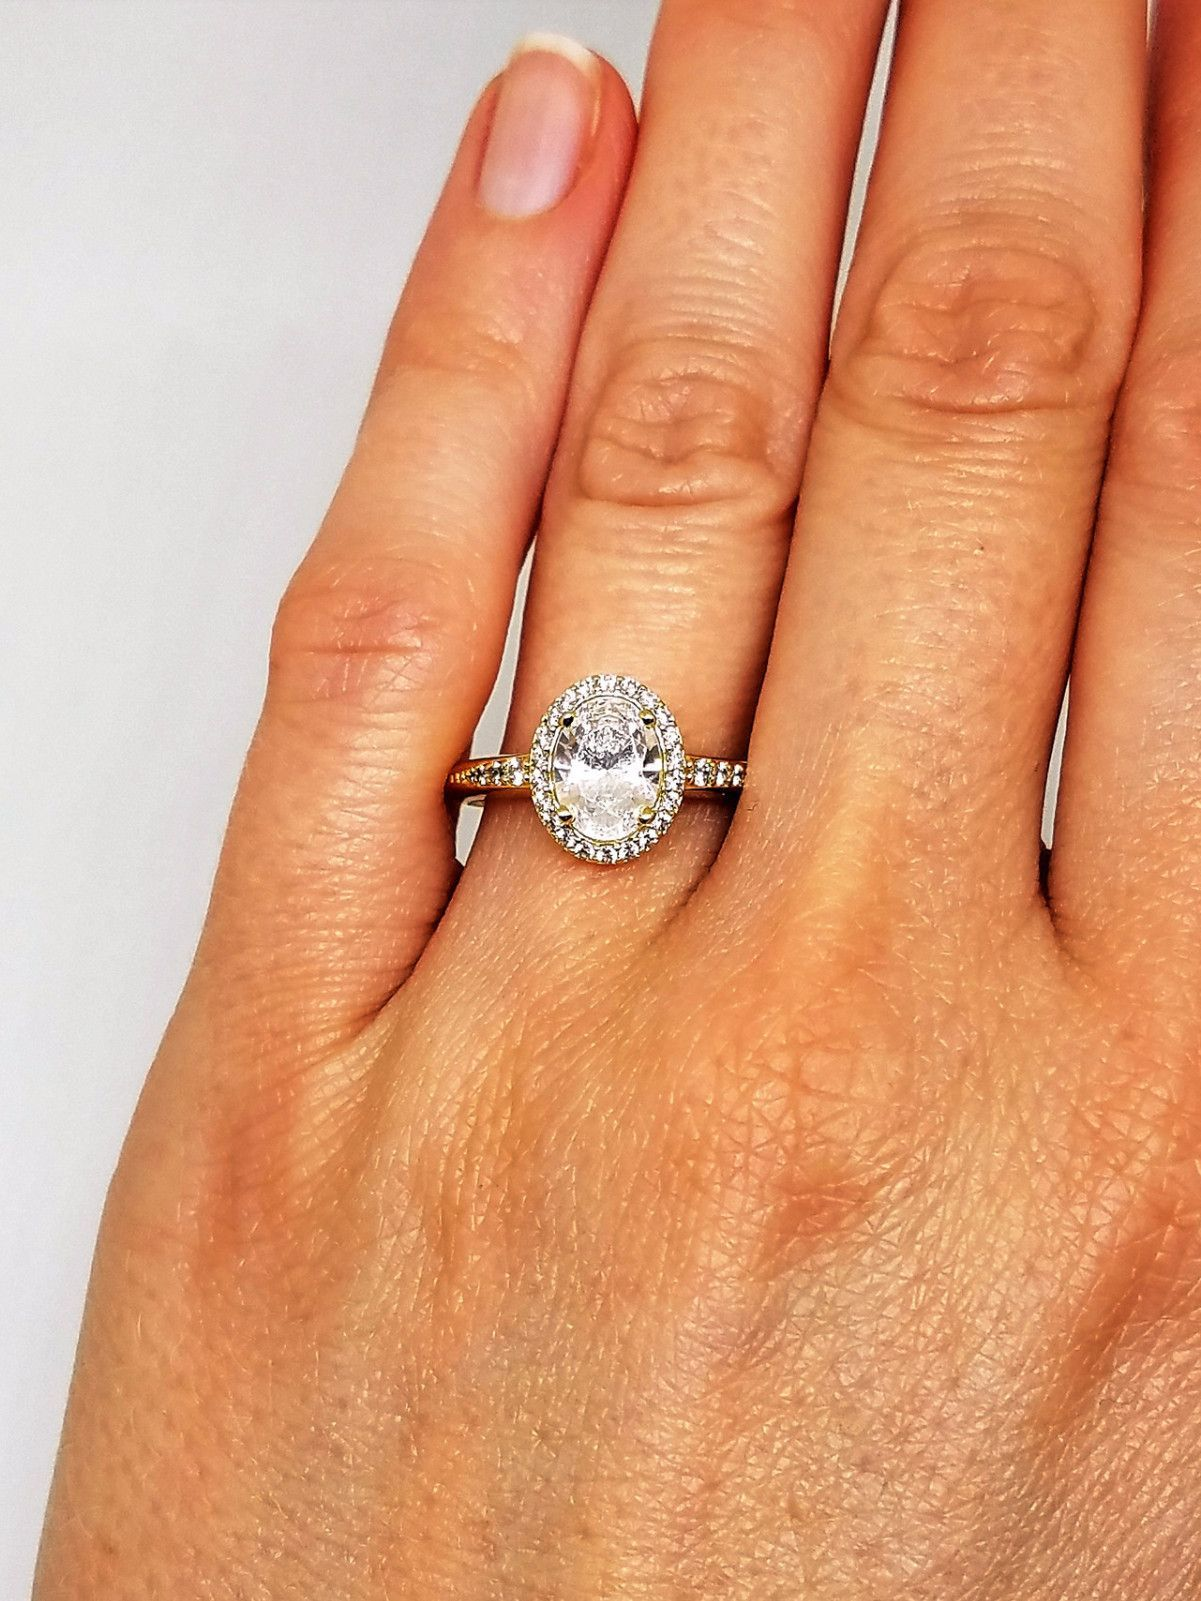 Gia Certified 1 28 Tcw Oval Halo Diamond Engagement Ring 14k Gold Small Engagement Rings Sapphire Diamond Engagement 14k Engagement Ring